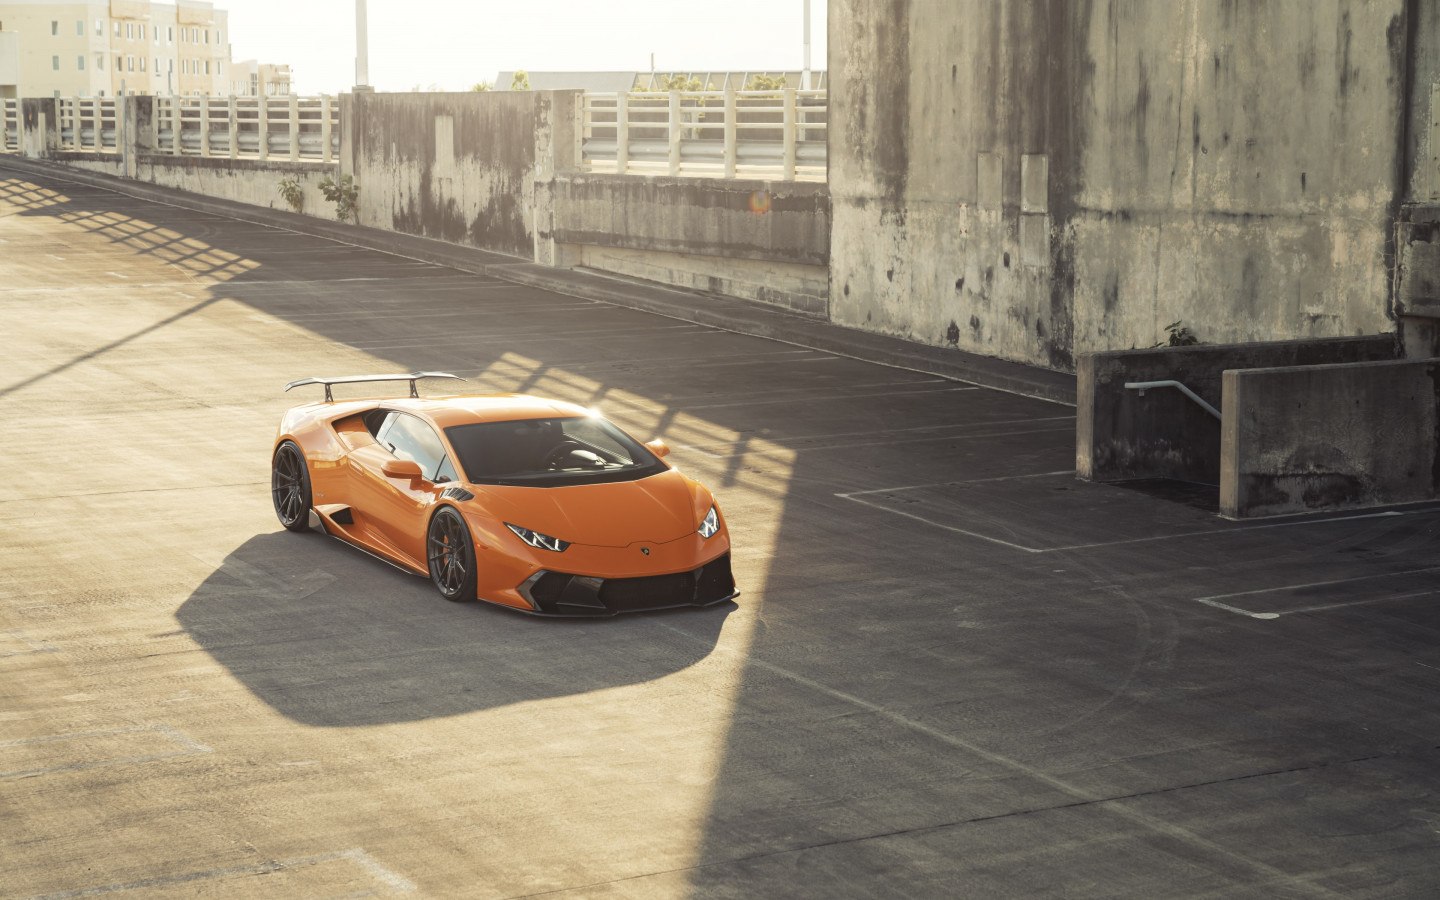 ANRKY Fish Orange Lambo Huracan wallpaper 1440x900